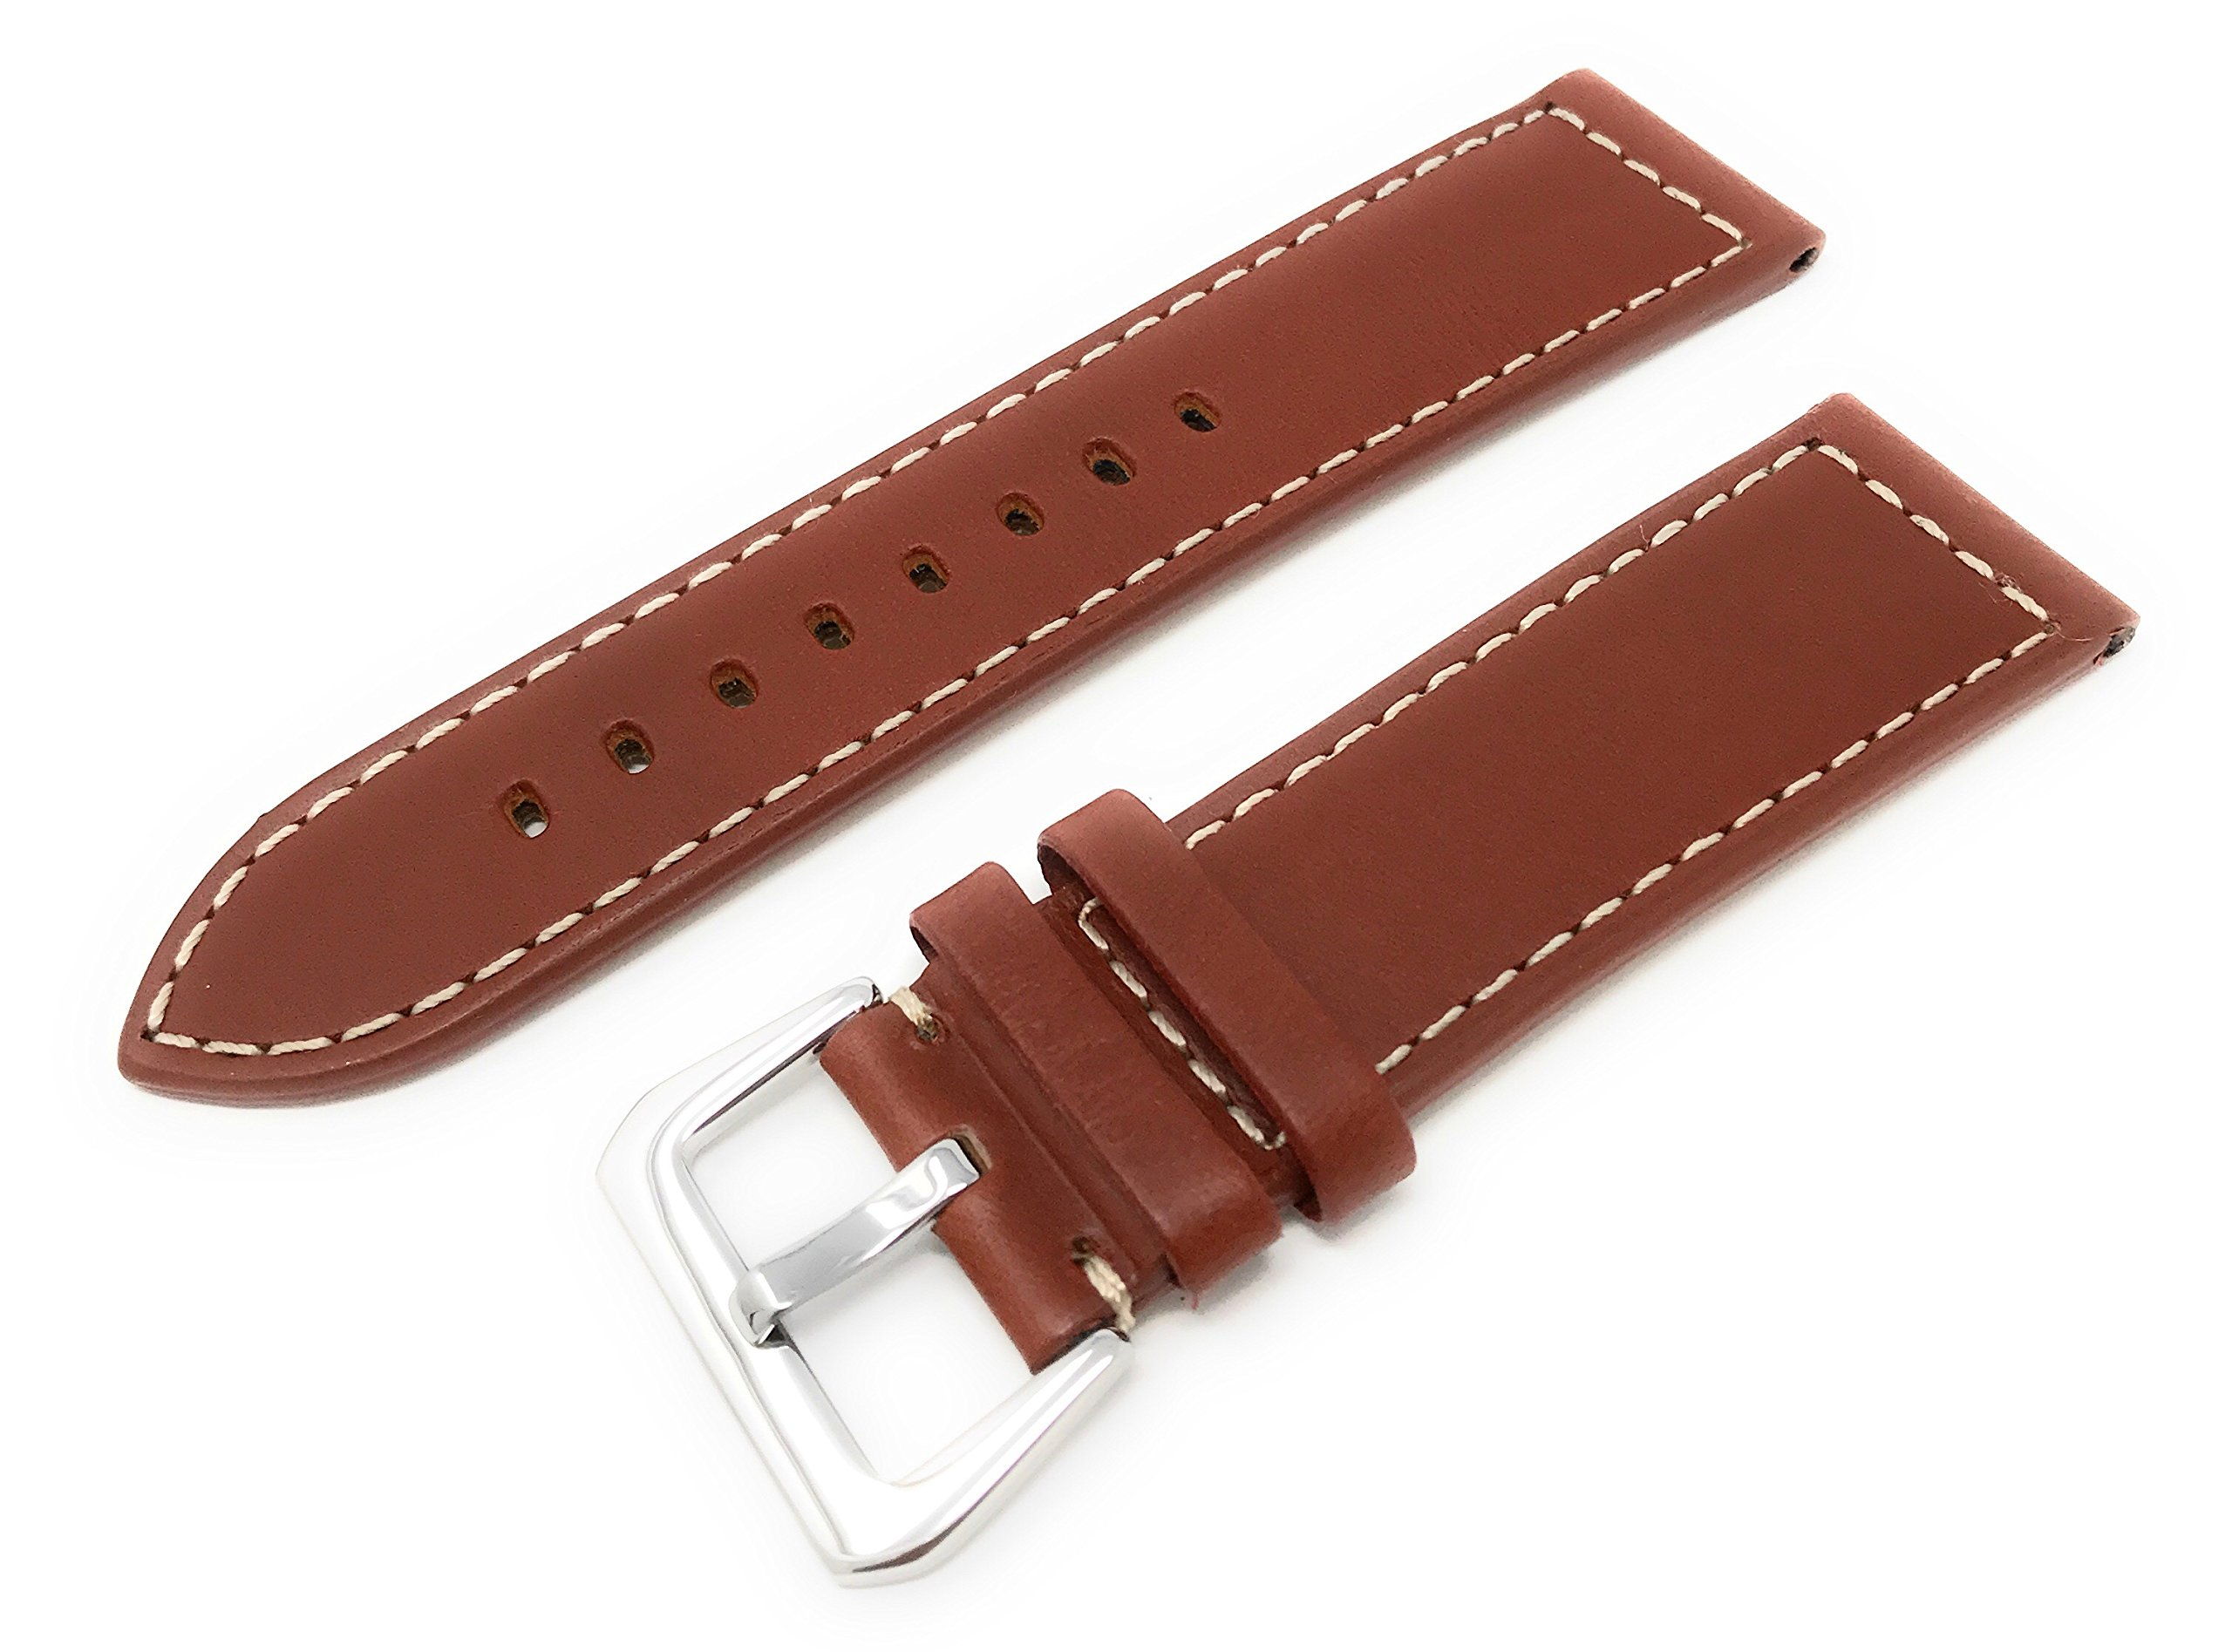 20mm Width Panerai Style Leather Watch Band Original Style stainless Steel Buckle Tan Color Watchband - by JP Leatherworks